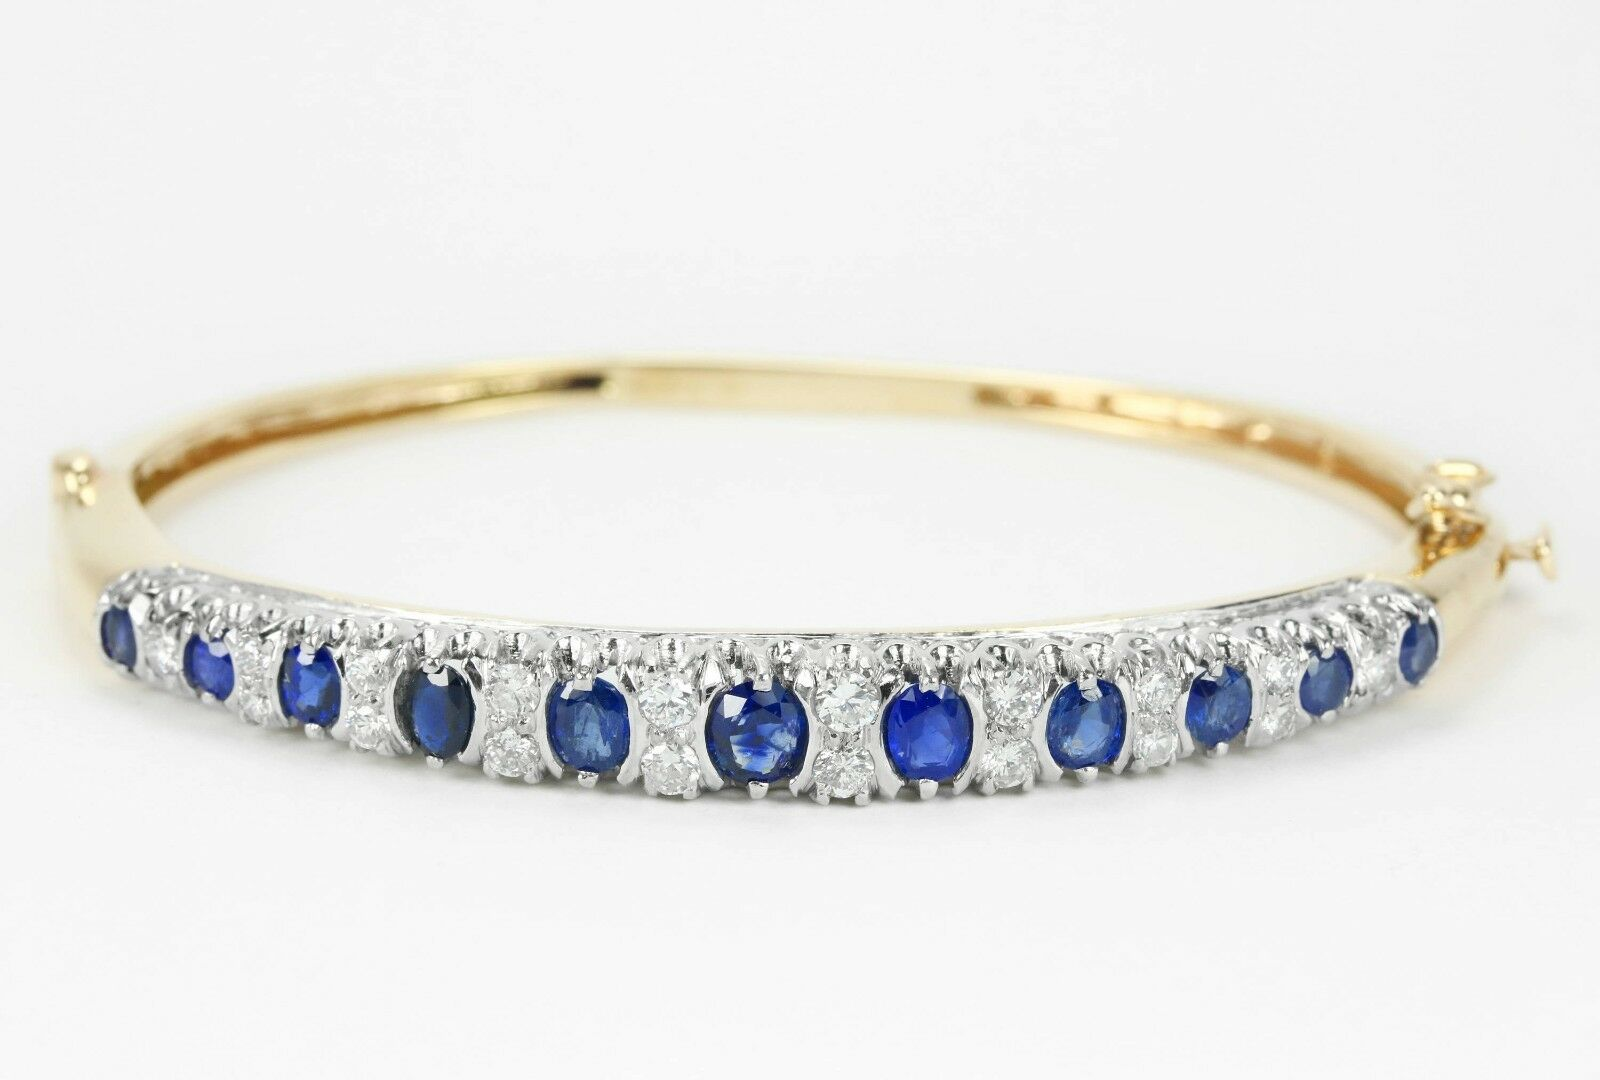 and bracelet diamond square sapphire all carat bracelets bangles bangle gold amoro white